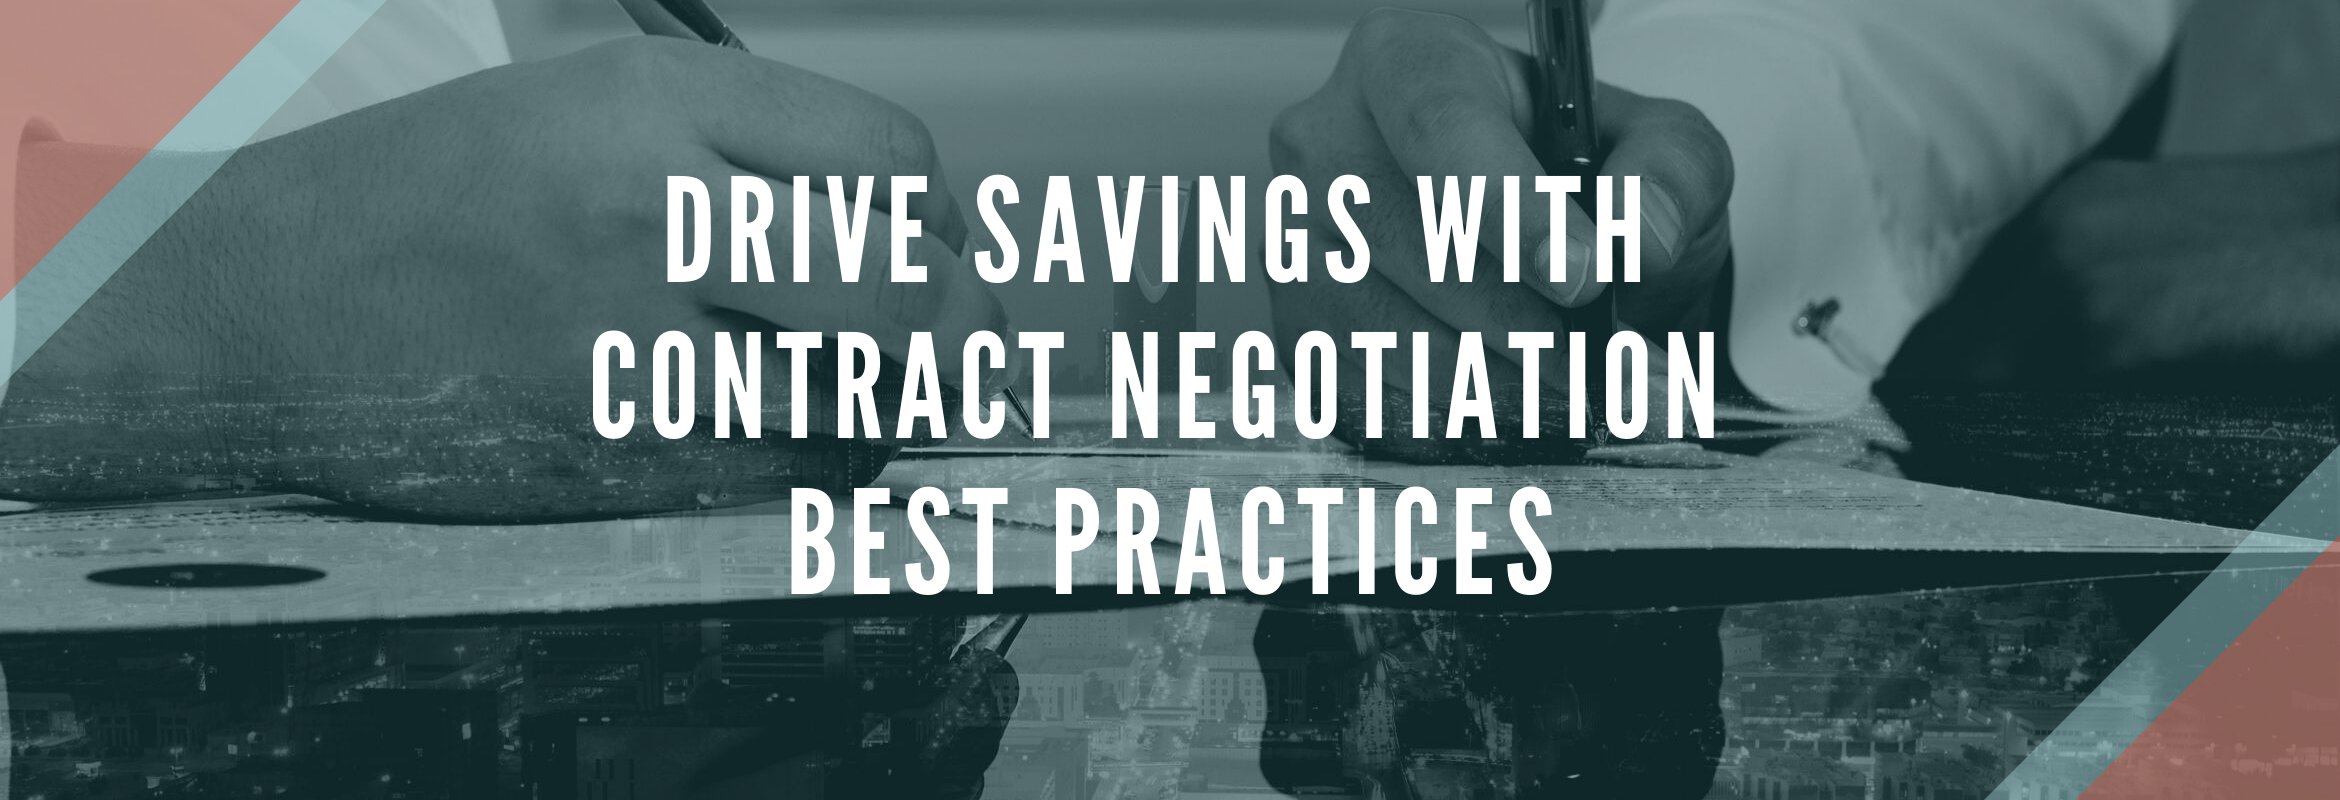 Best practices in contract negotiations